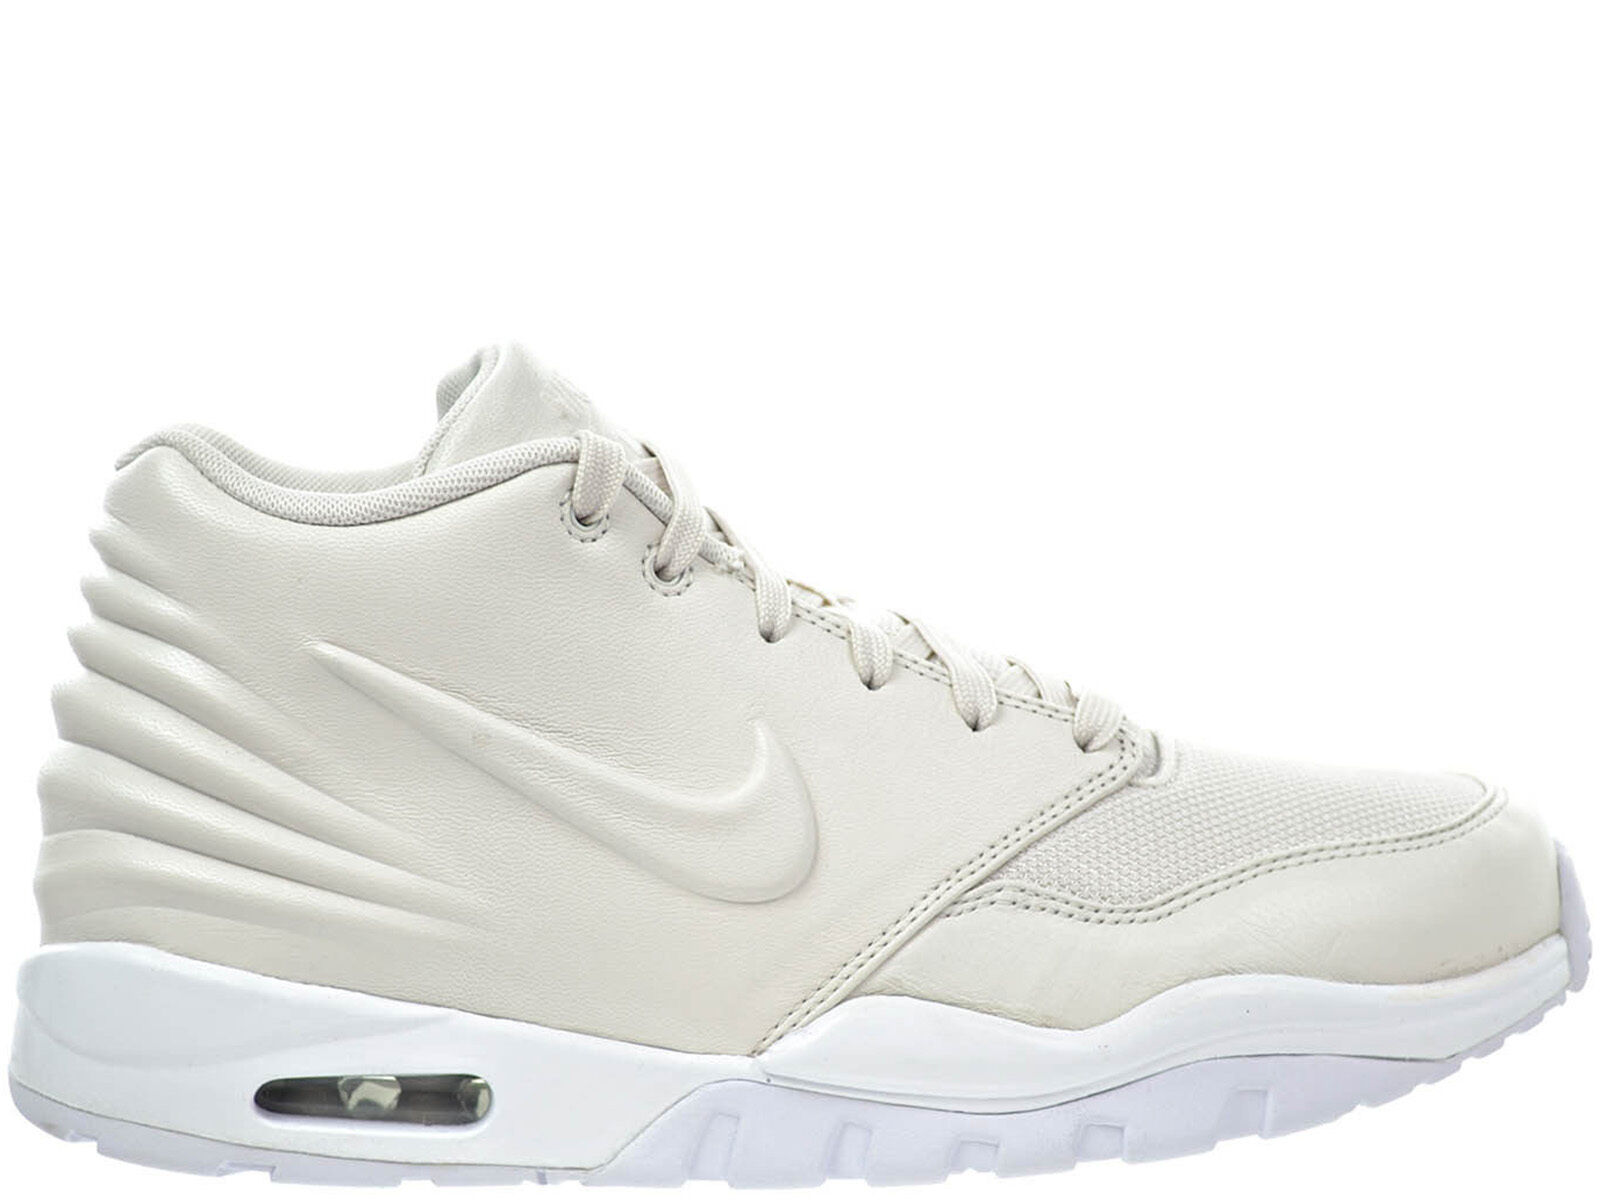 Brand New Nike Air Entertainer Men's Athletic Fashion Sneakers [819854 002]